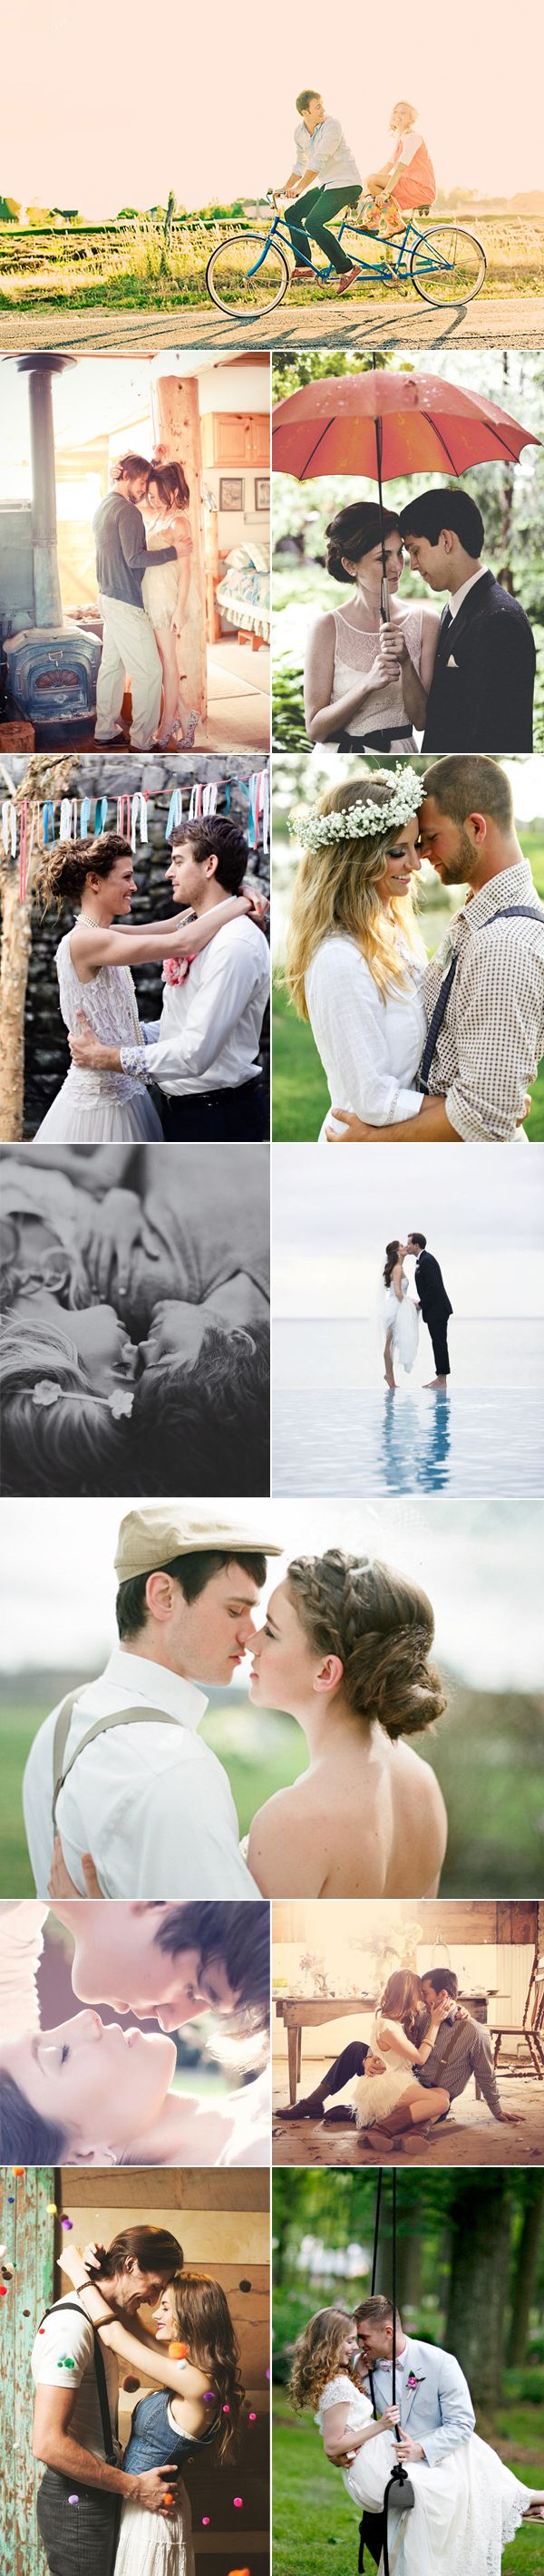 Love all these engagement photos - really depicts the romance between these couples